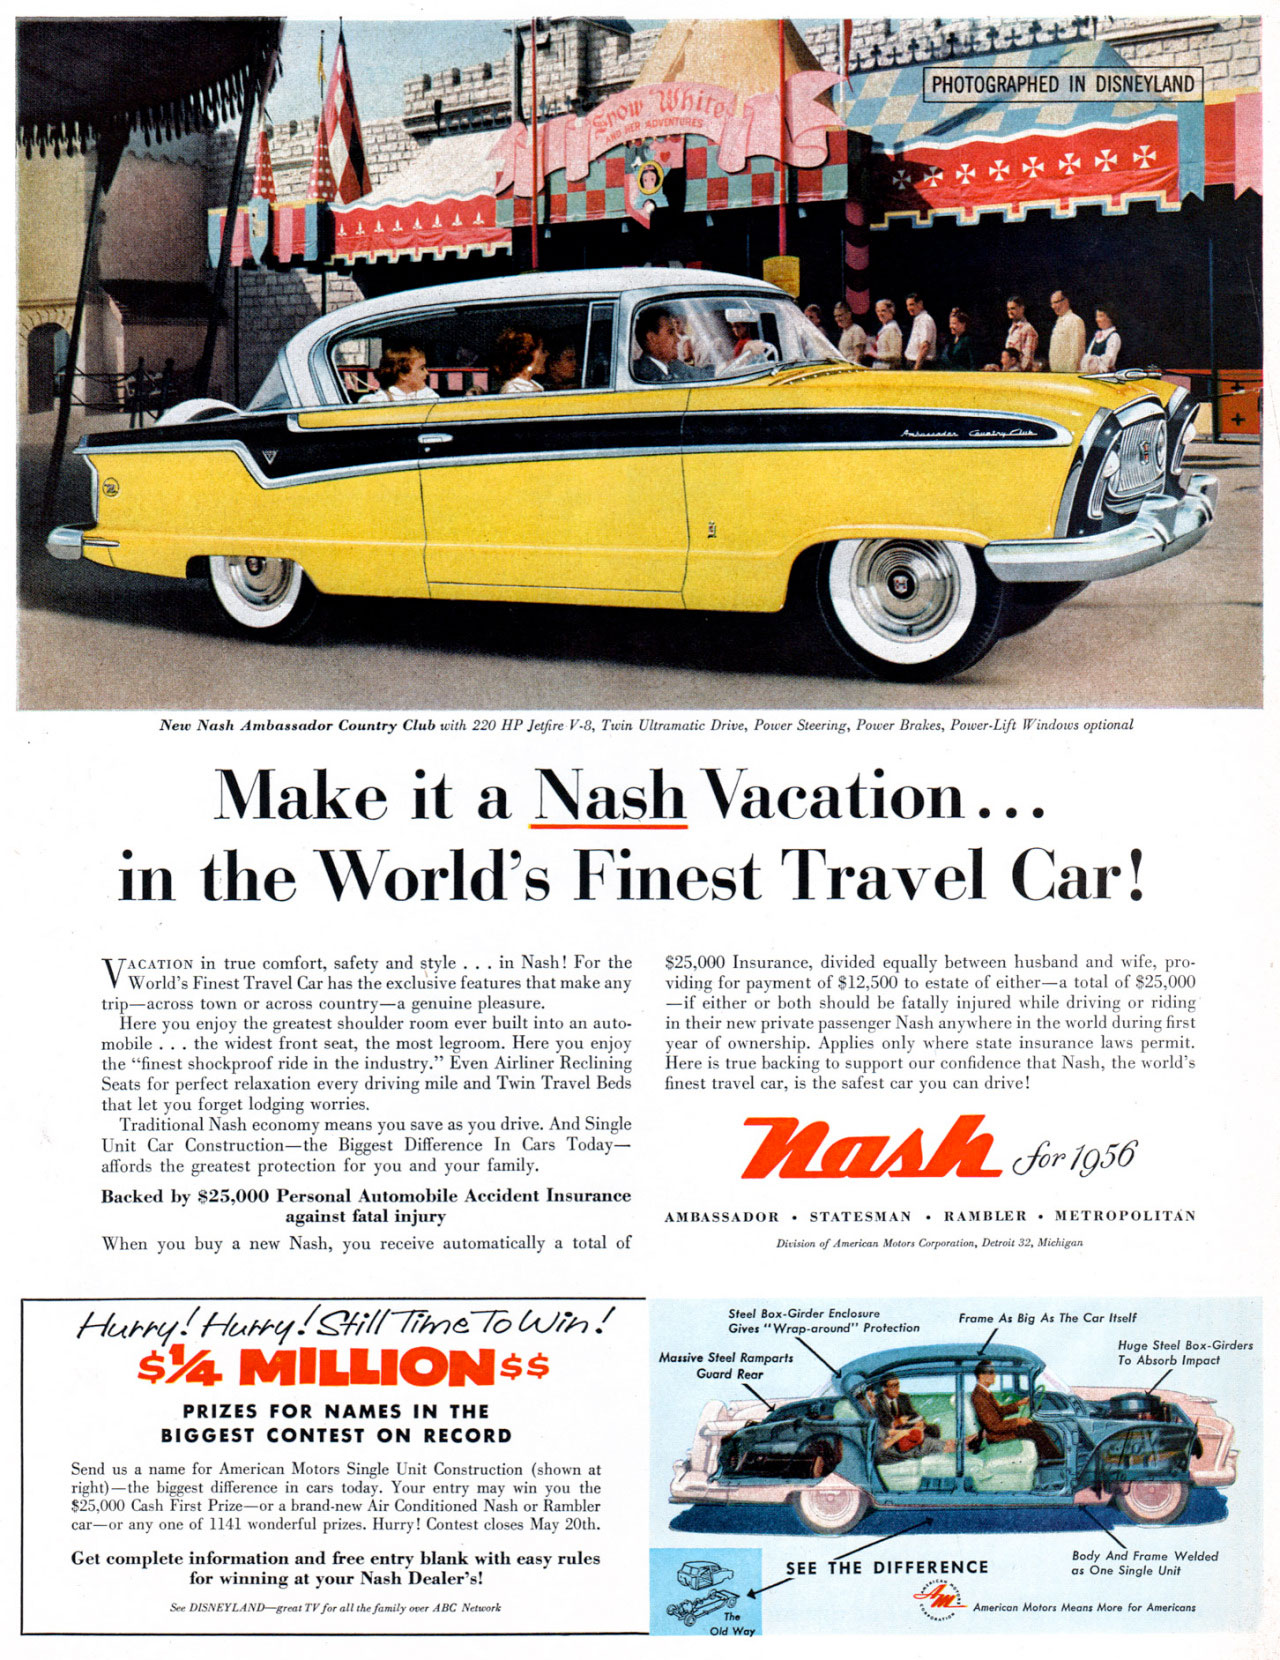 PHOTOGRAPHED IN DISNEYLAND  .,A4 44 °Pi   New Nash Ambassador Count, Club with 220 HP Jetfire V.8, Twin Ultramatic Drive, Potcer Steering, Power Brakes, Power-Lift Windows optional  Make it a Nash Vacation... in the World's Finest Travel Car!  VACATION in true comfort, safety and style . . . in Nash! For the 025,000 Insurance, divided equally between husband and wife, pro-World's Finest Travel Car has the exclu'sive features that make any viditeg for payment of $12,500 to estate of either—a total of $25,000 trip—across town or across country—a genuine pleasure. —if either or both should be fatally injured while driving or riding Here you enjoy the greatest shoulder room ever built into an auto- in their new private passenger Nash anywhere in the world during first mobile . . . the widest front seat, the most legroom. Here you enjoy year of ownership. Applies only where state insurance laws permit. the ''finest shockproof ride in the industry.'' Even Airliner Reclining Here is true backing to support our confidence that Nash, the world's Seats for perfect relaxation every driving mile and Twin Travel Beds finest travel car, is the safest car you can drive! that let you forget lodging worries. Traditional Nash economy means you save as you drive. And Single Unit Car Construction—the Biggest Difference In Cars Today—affords the greatest protection for you and your family. 7115rAlk. Cfir /956 Backed by $25,000 Personal Automobile Accident Insurance against fatal injury AMBASSADOR • STATESMAN • RAMBLER • METROPOLITAN When you buy a new Nash, you receive automatically a total of  Disision of Amerioon Mews Cospenuion, Detroit 32, Michigan  /---/ukfryibie,wy./S31/77-77/nd-7(3 $%411101ILLIONss  PRIZES FOR NAMES IN THE BIGGEST CONTEST ON RECORD Send as a name for American Motors Single Unit Construction (shown at right)—the biggest difference in cars today. Your entry may win you the $25,000 Cash First Prize—or a brand-new Air Conditioned Nash or Rambler car—or any one of 1141 wonderful prizes. Hurry! Contest closes May 20th.  Get complete information and free entry blank with may rules for whining at your Nash Dealer's!  Sec DISNEYLAND--greet TV bran the fondly over ABC Neneesk  Steel flon•Girder Enclosure Gives Wrop•oround'' Protection  Frame As Big As The Car Itself   To Absorb Impact  SEE THE DIFFERENCE 44V1